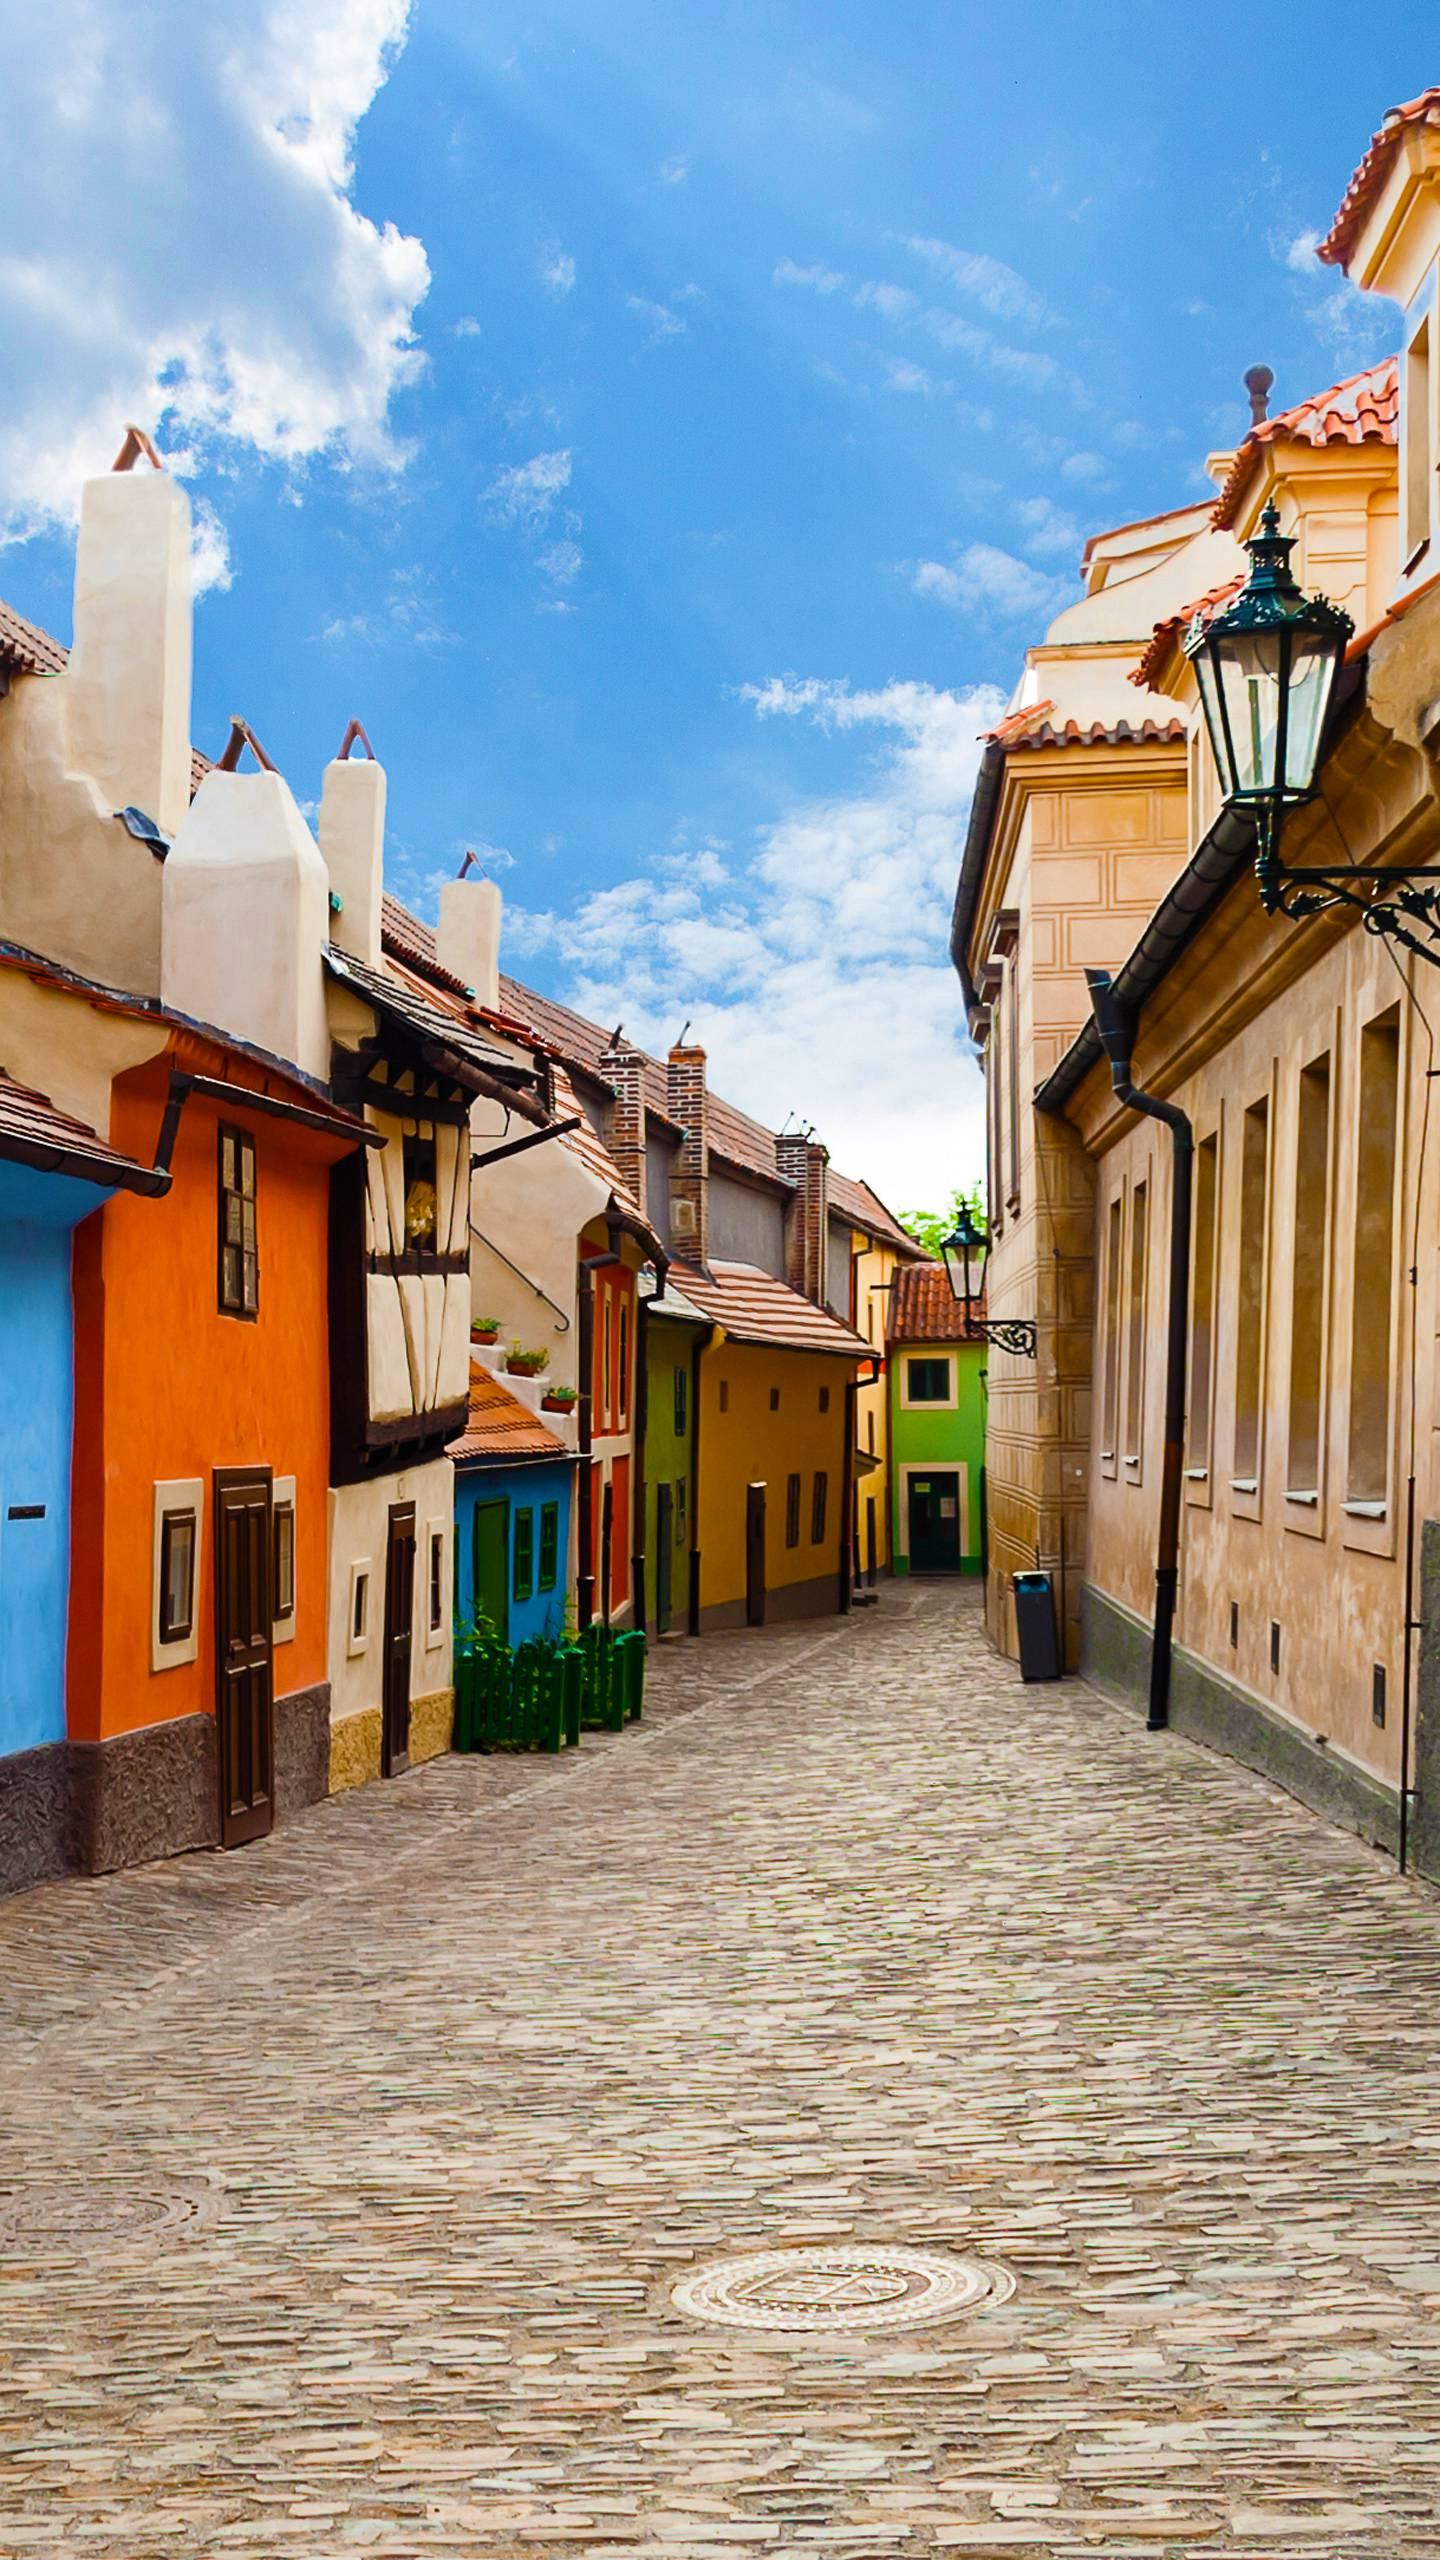 Prague - Golden Lane. Prague's most poetic street has a fairytale-like house, where the famous writer Kafka once lived.